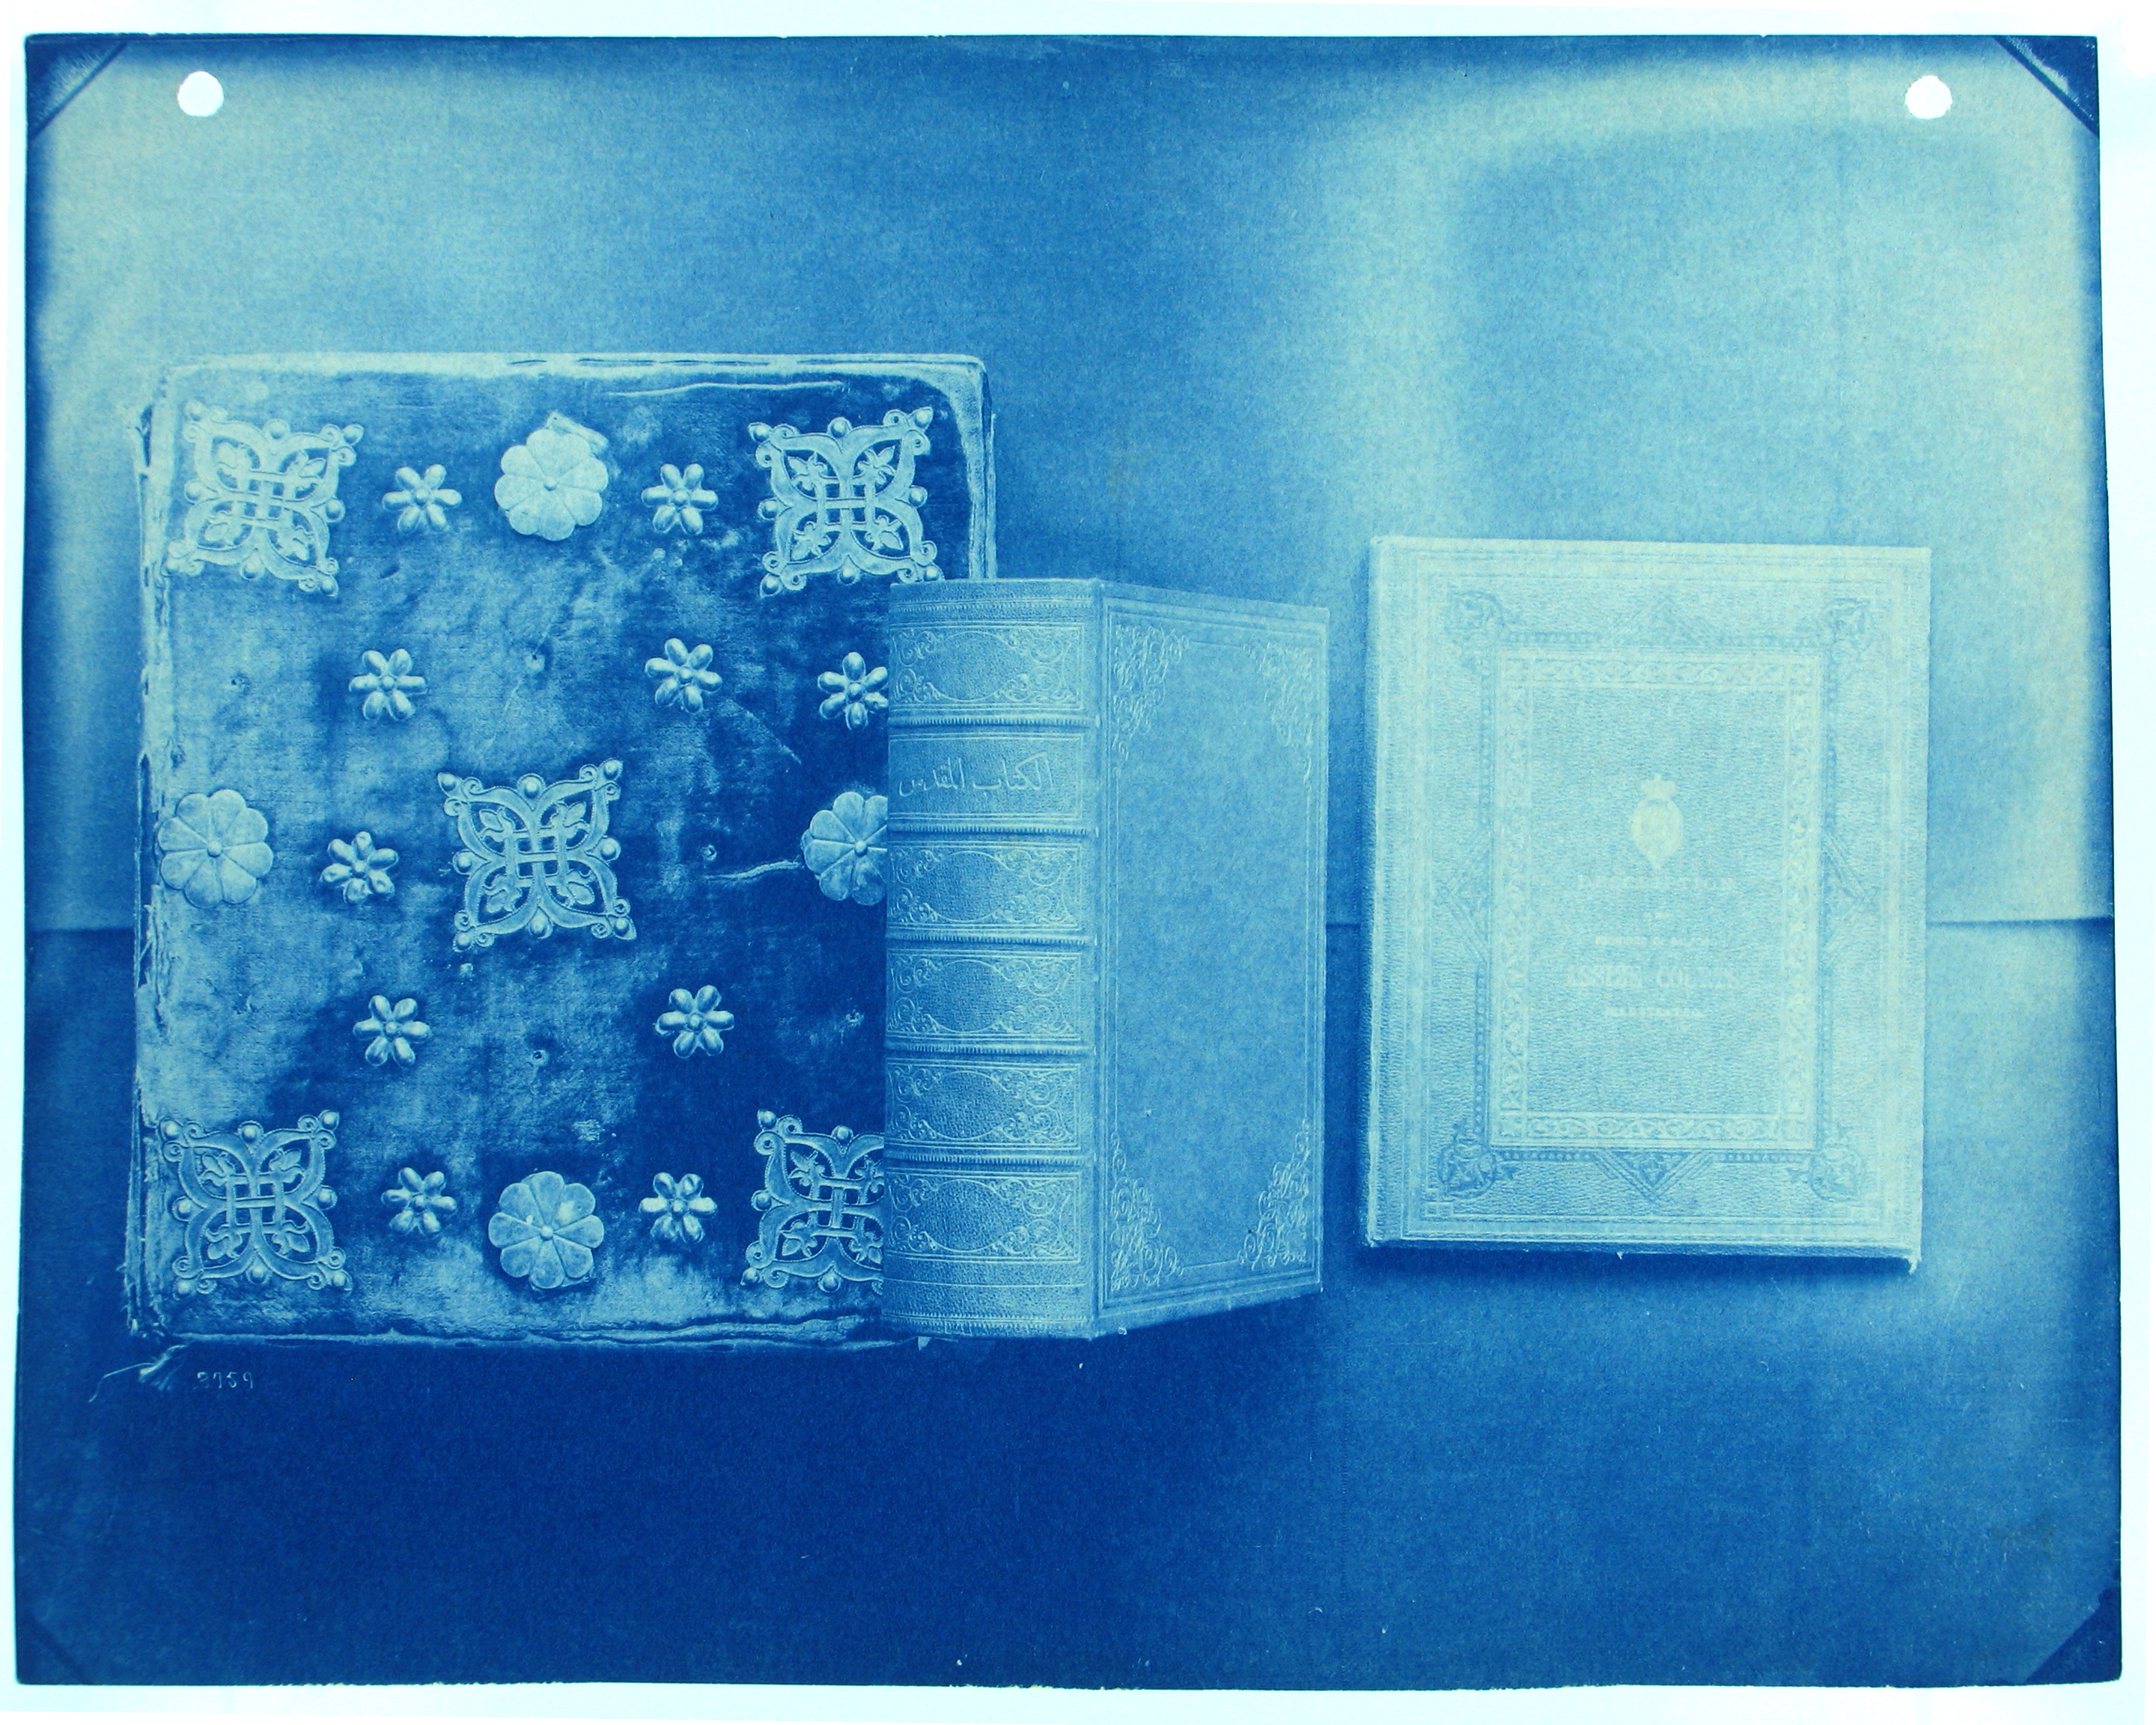 Photography: The Beautiful Cyanotypes